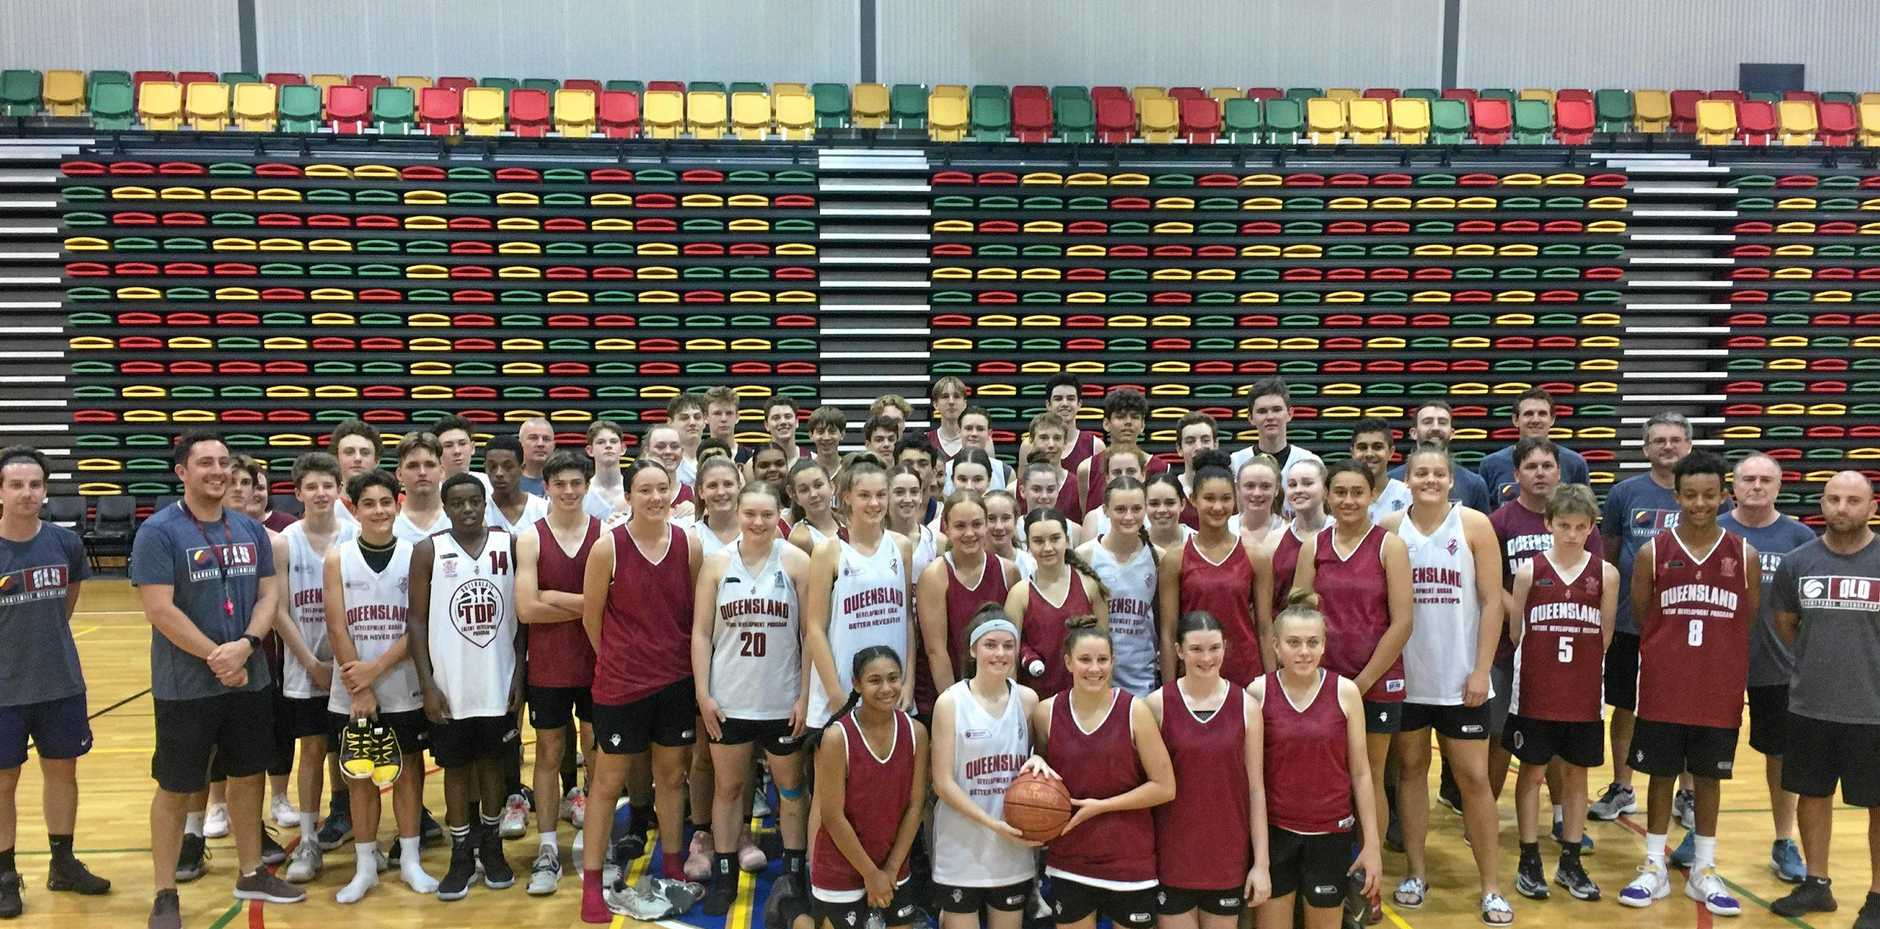 COMBINED EFFORT: Players and coaches pose for a mega-shot after the State Performance Program training for the U16 boys and girls squads.